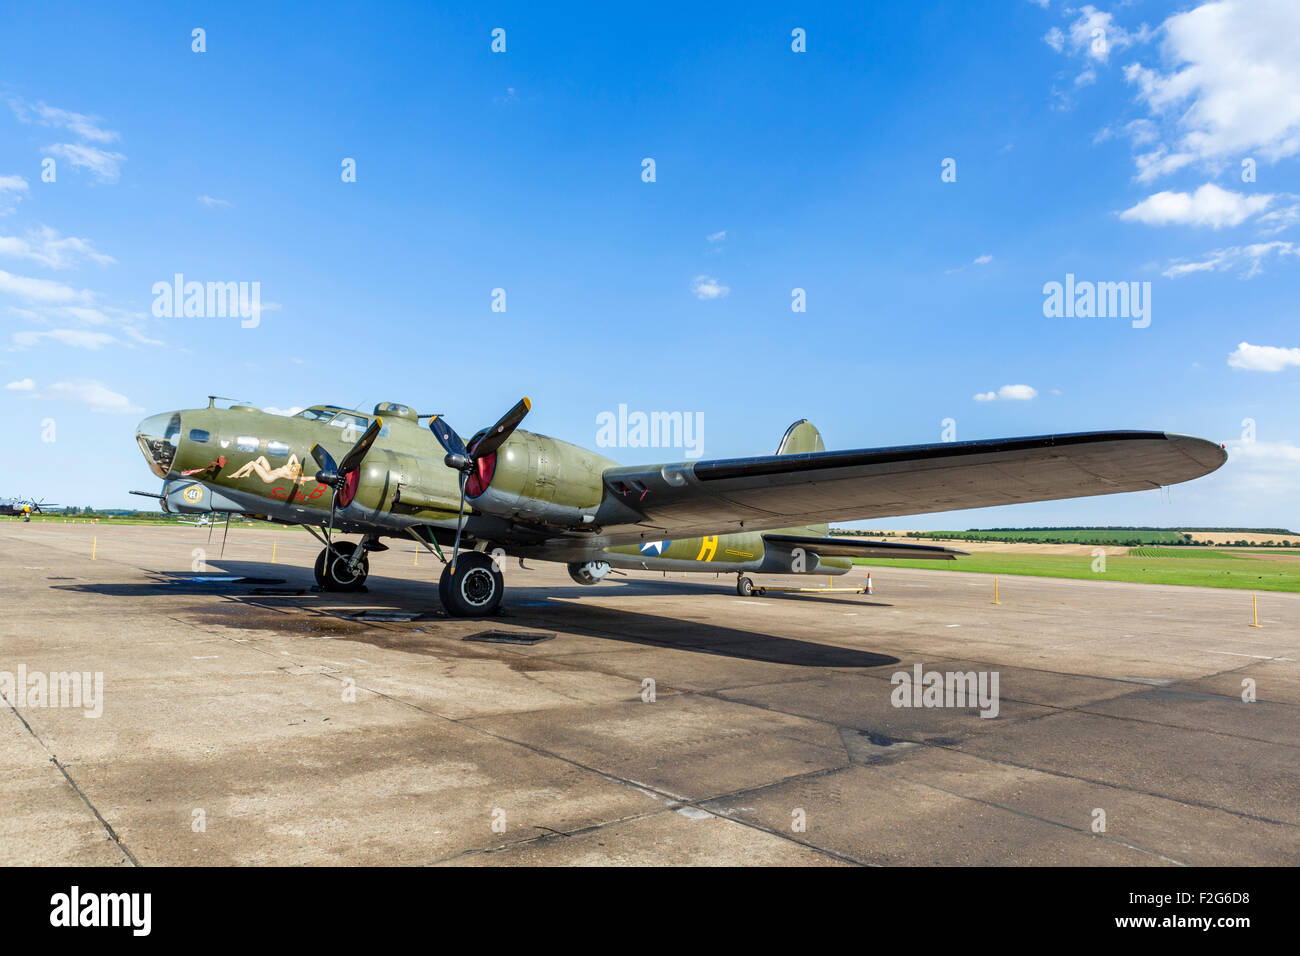 Boeing B-17G Flying Fortress at the Imperial War Museum, Duxfuord, Cambridgeshire, England, UK Stock Photo